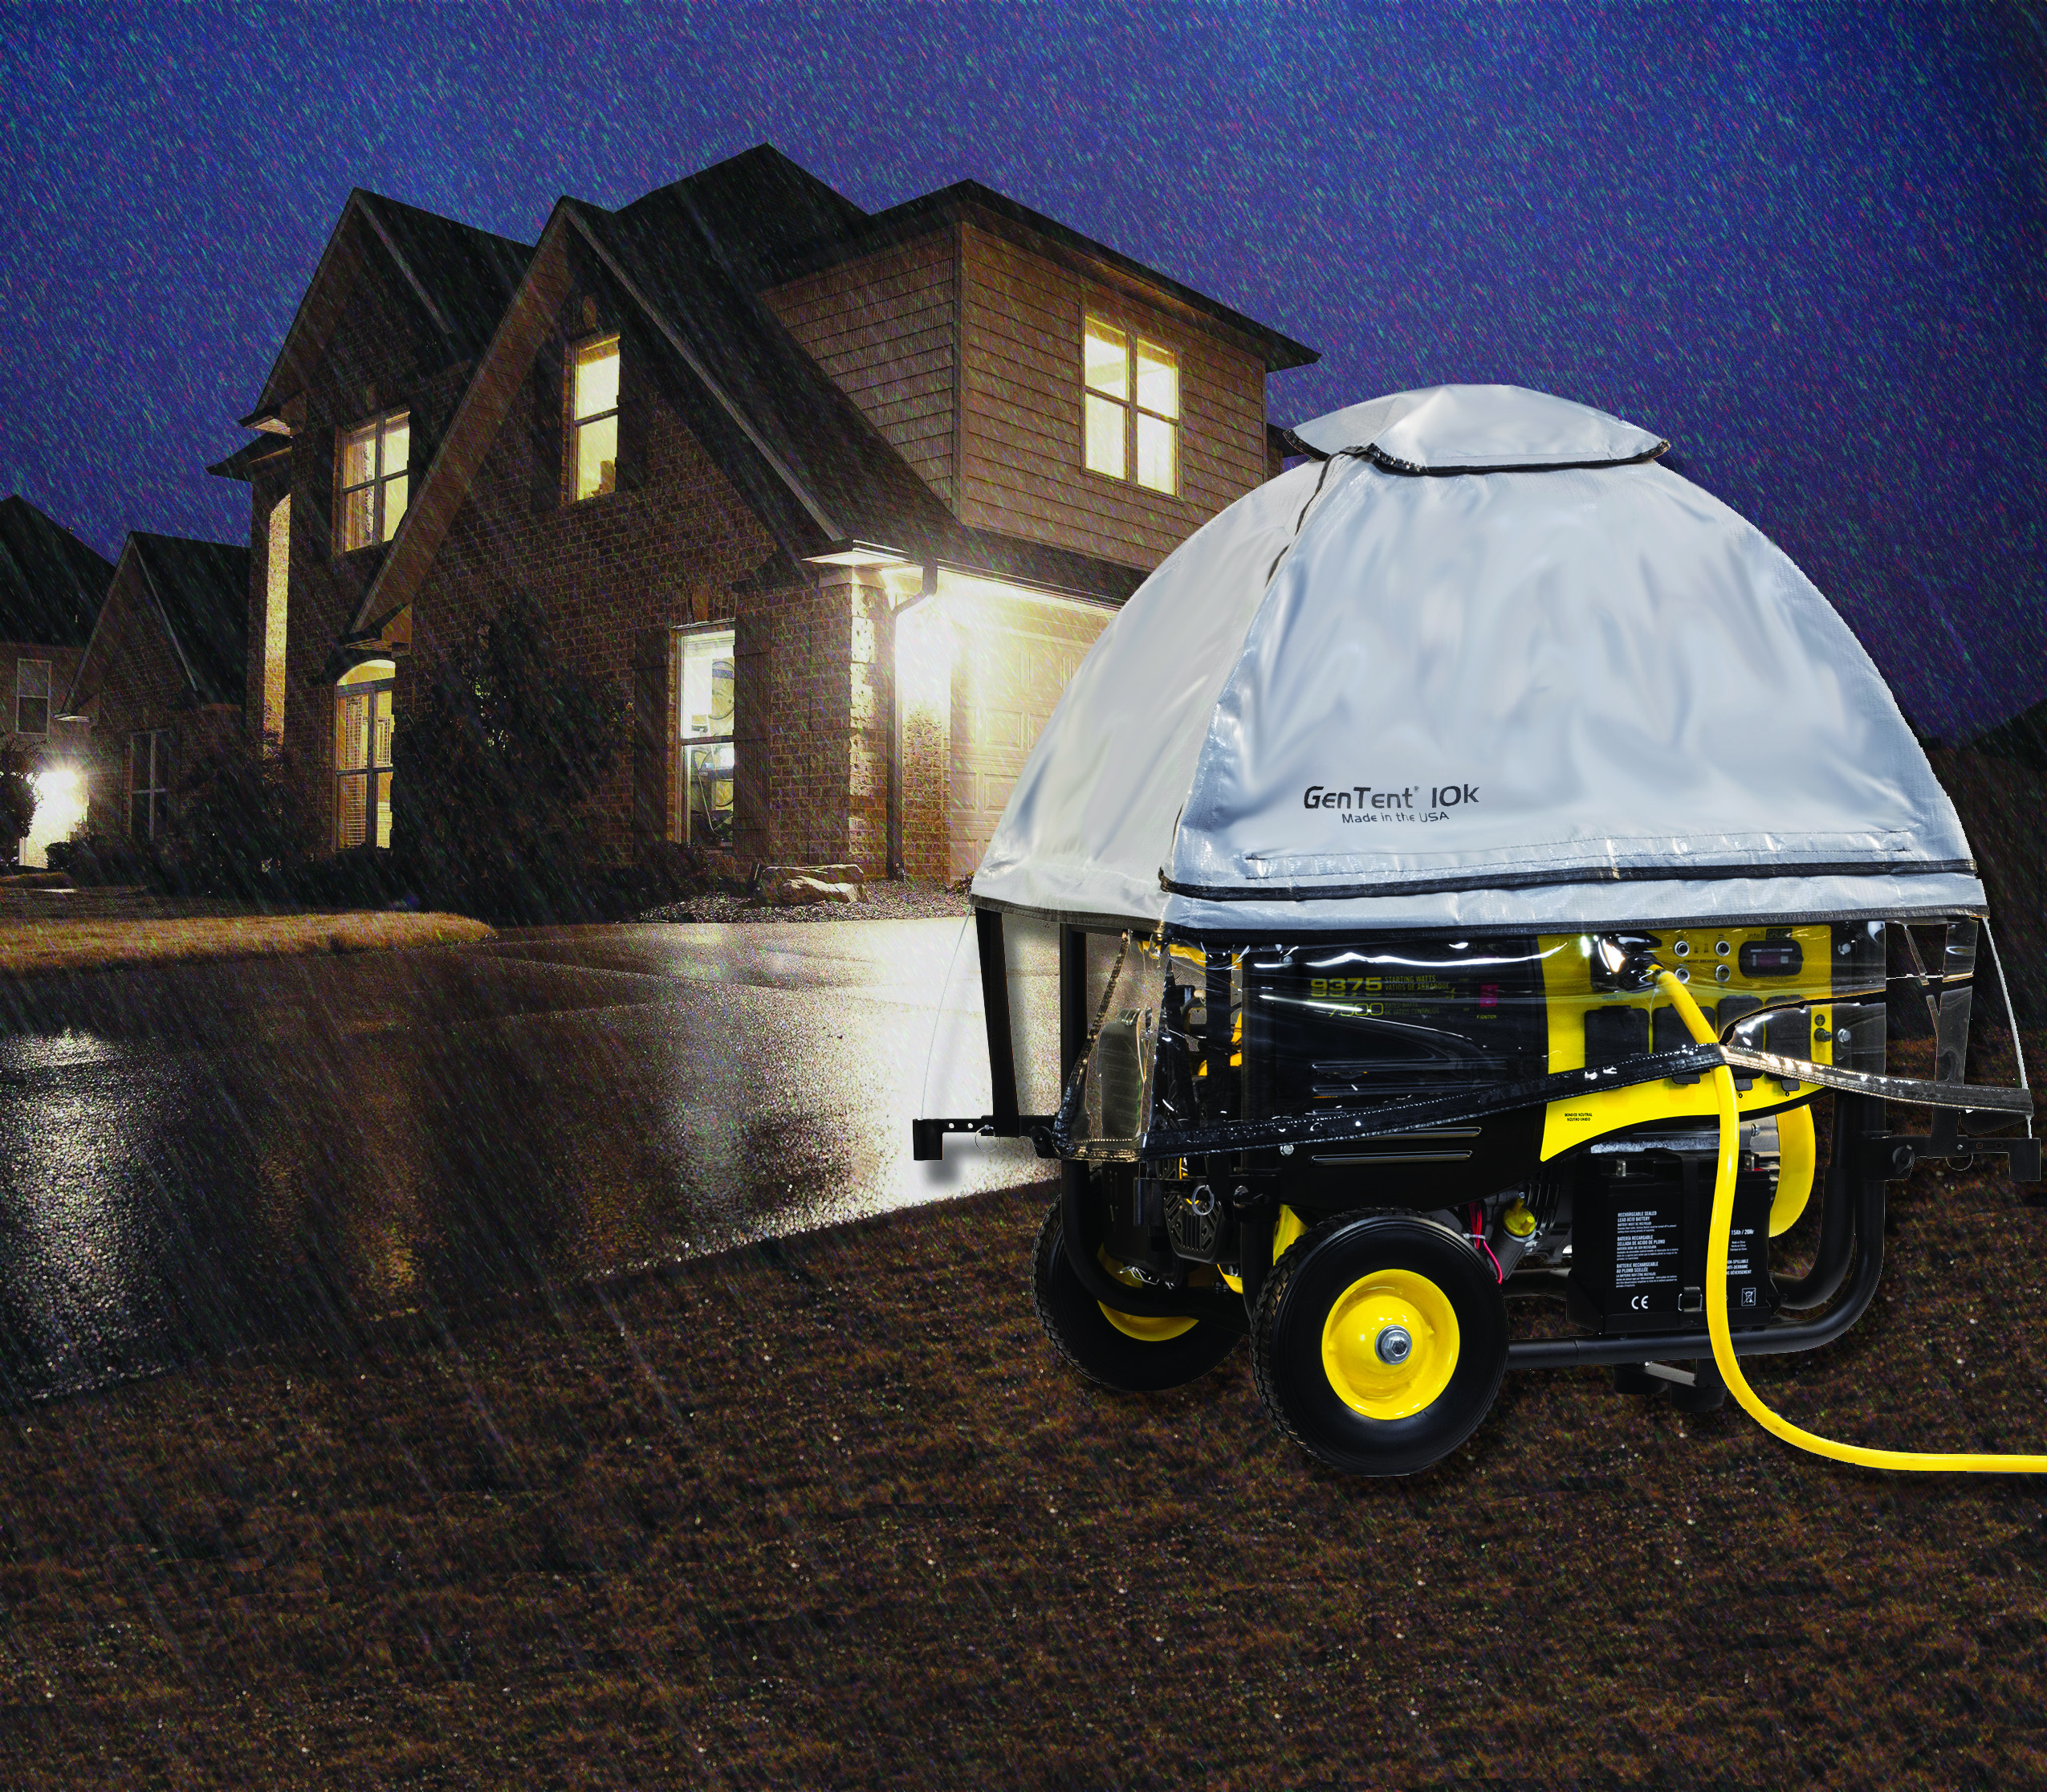 GenTent R Safety Canopies Expands Canadian Market Introduces New